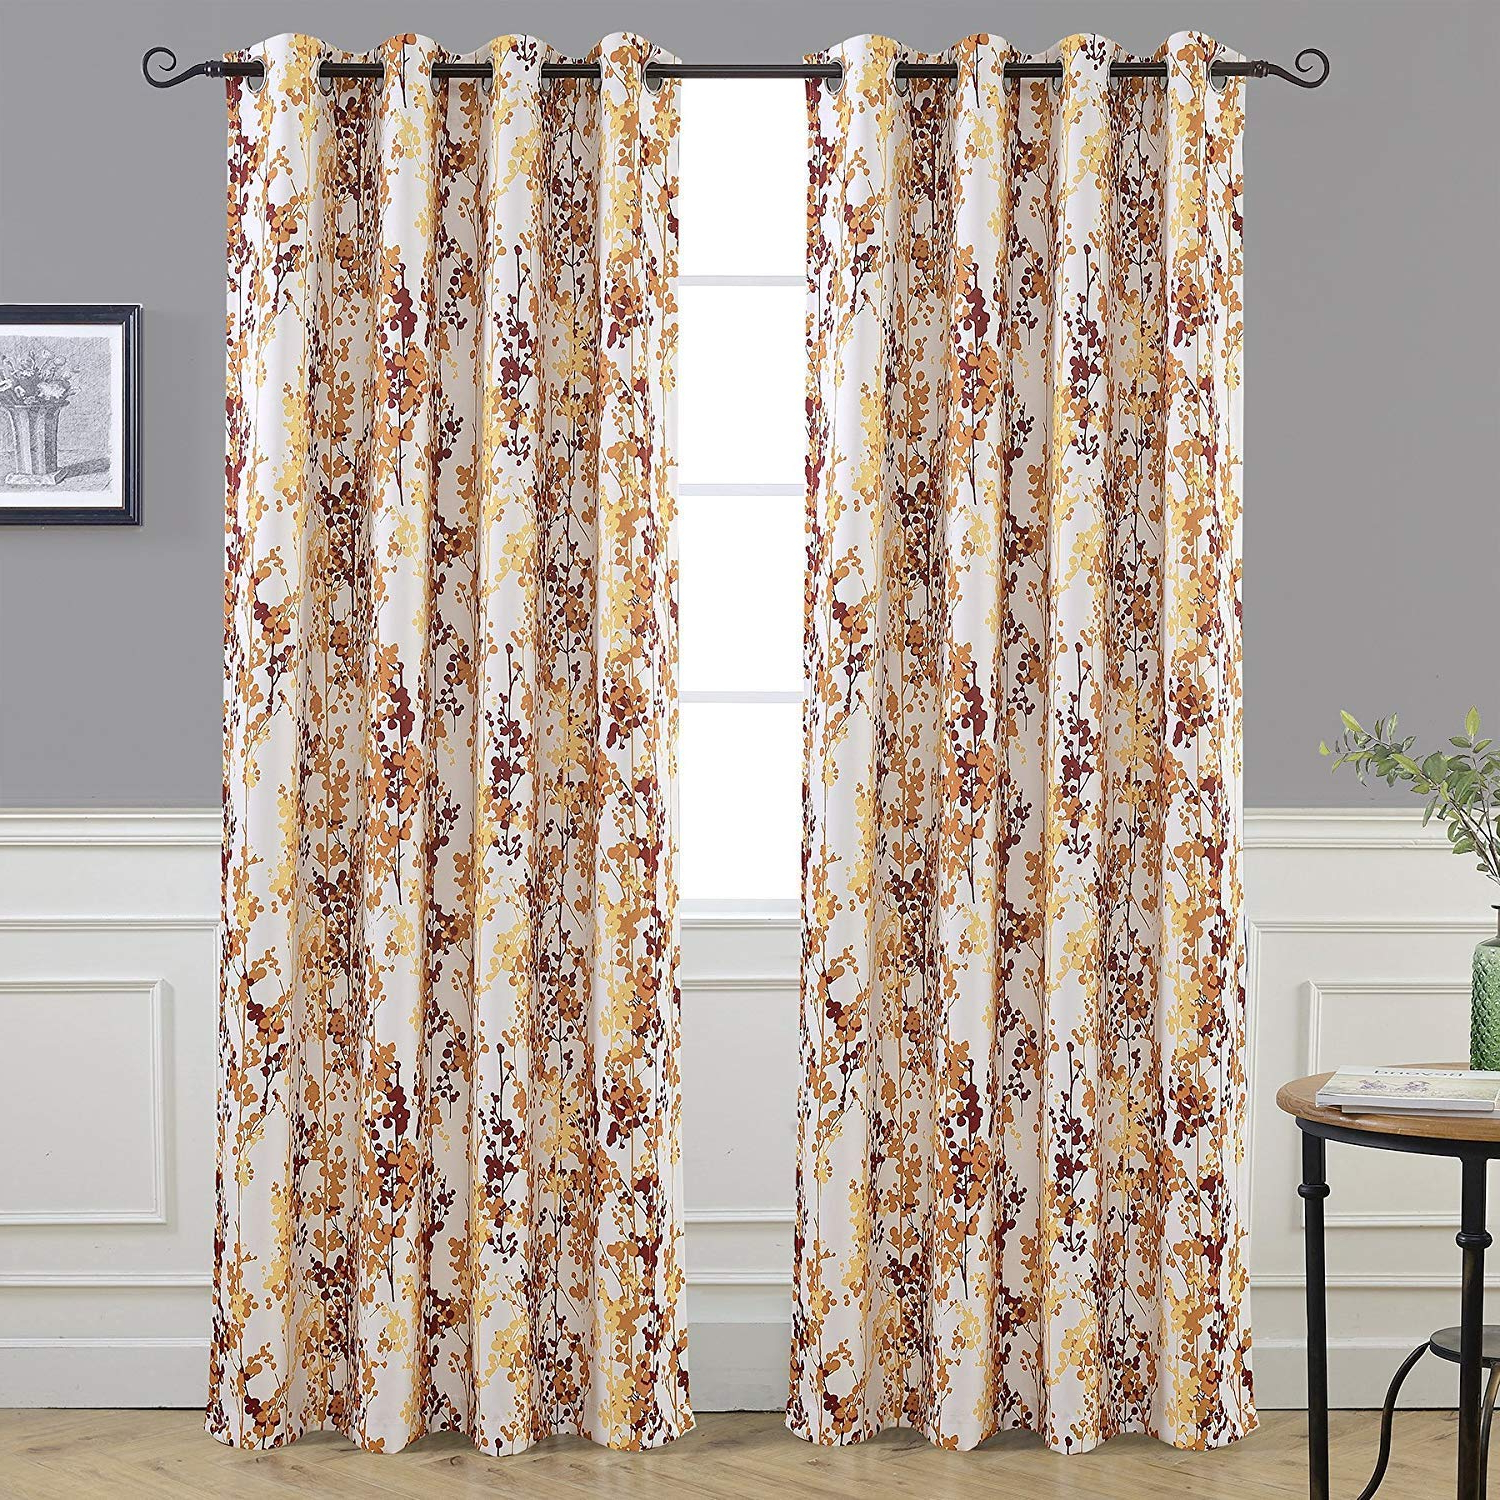 Floral Blossom Ink Painting Thermal Room Darkening Kitchen Tier Pairs With Regard To Well Liked Driftaway Leah Abstract Floral Blossom Ink Painting Room Darkening Thermal Insulated Grommet Unlined Window Curtains 2 Panels Each Size 52 Inch (View 6 of 20)